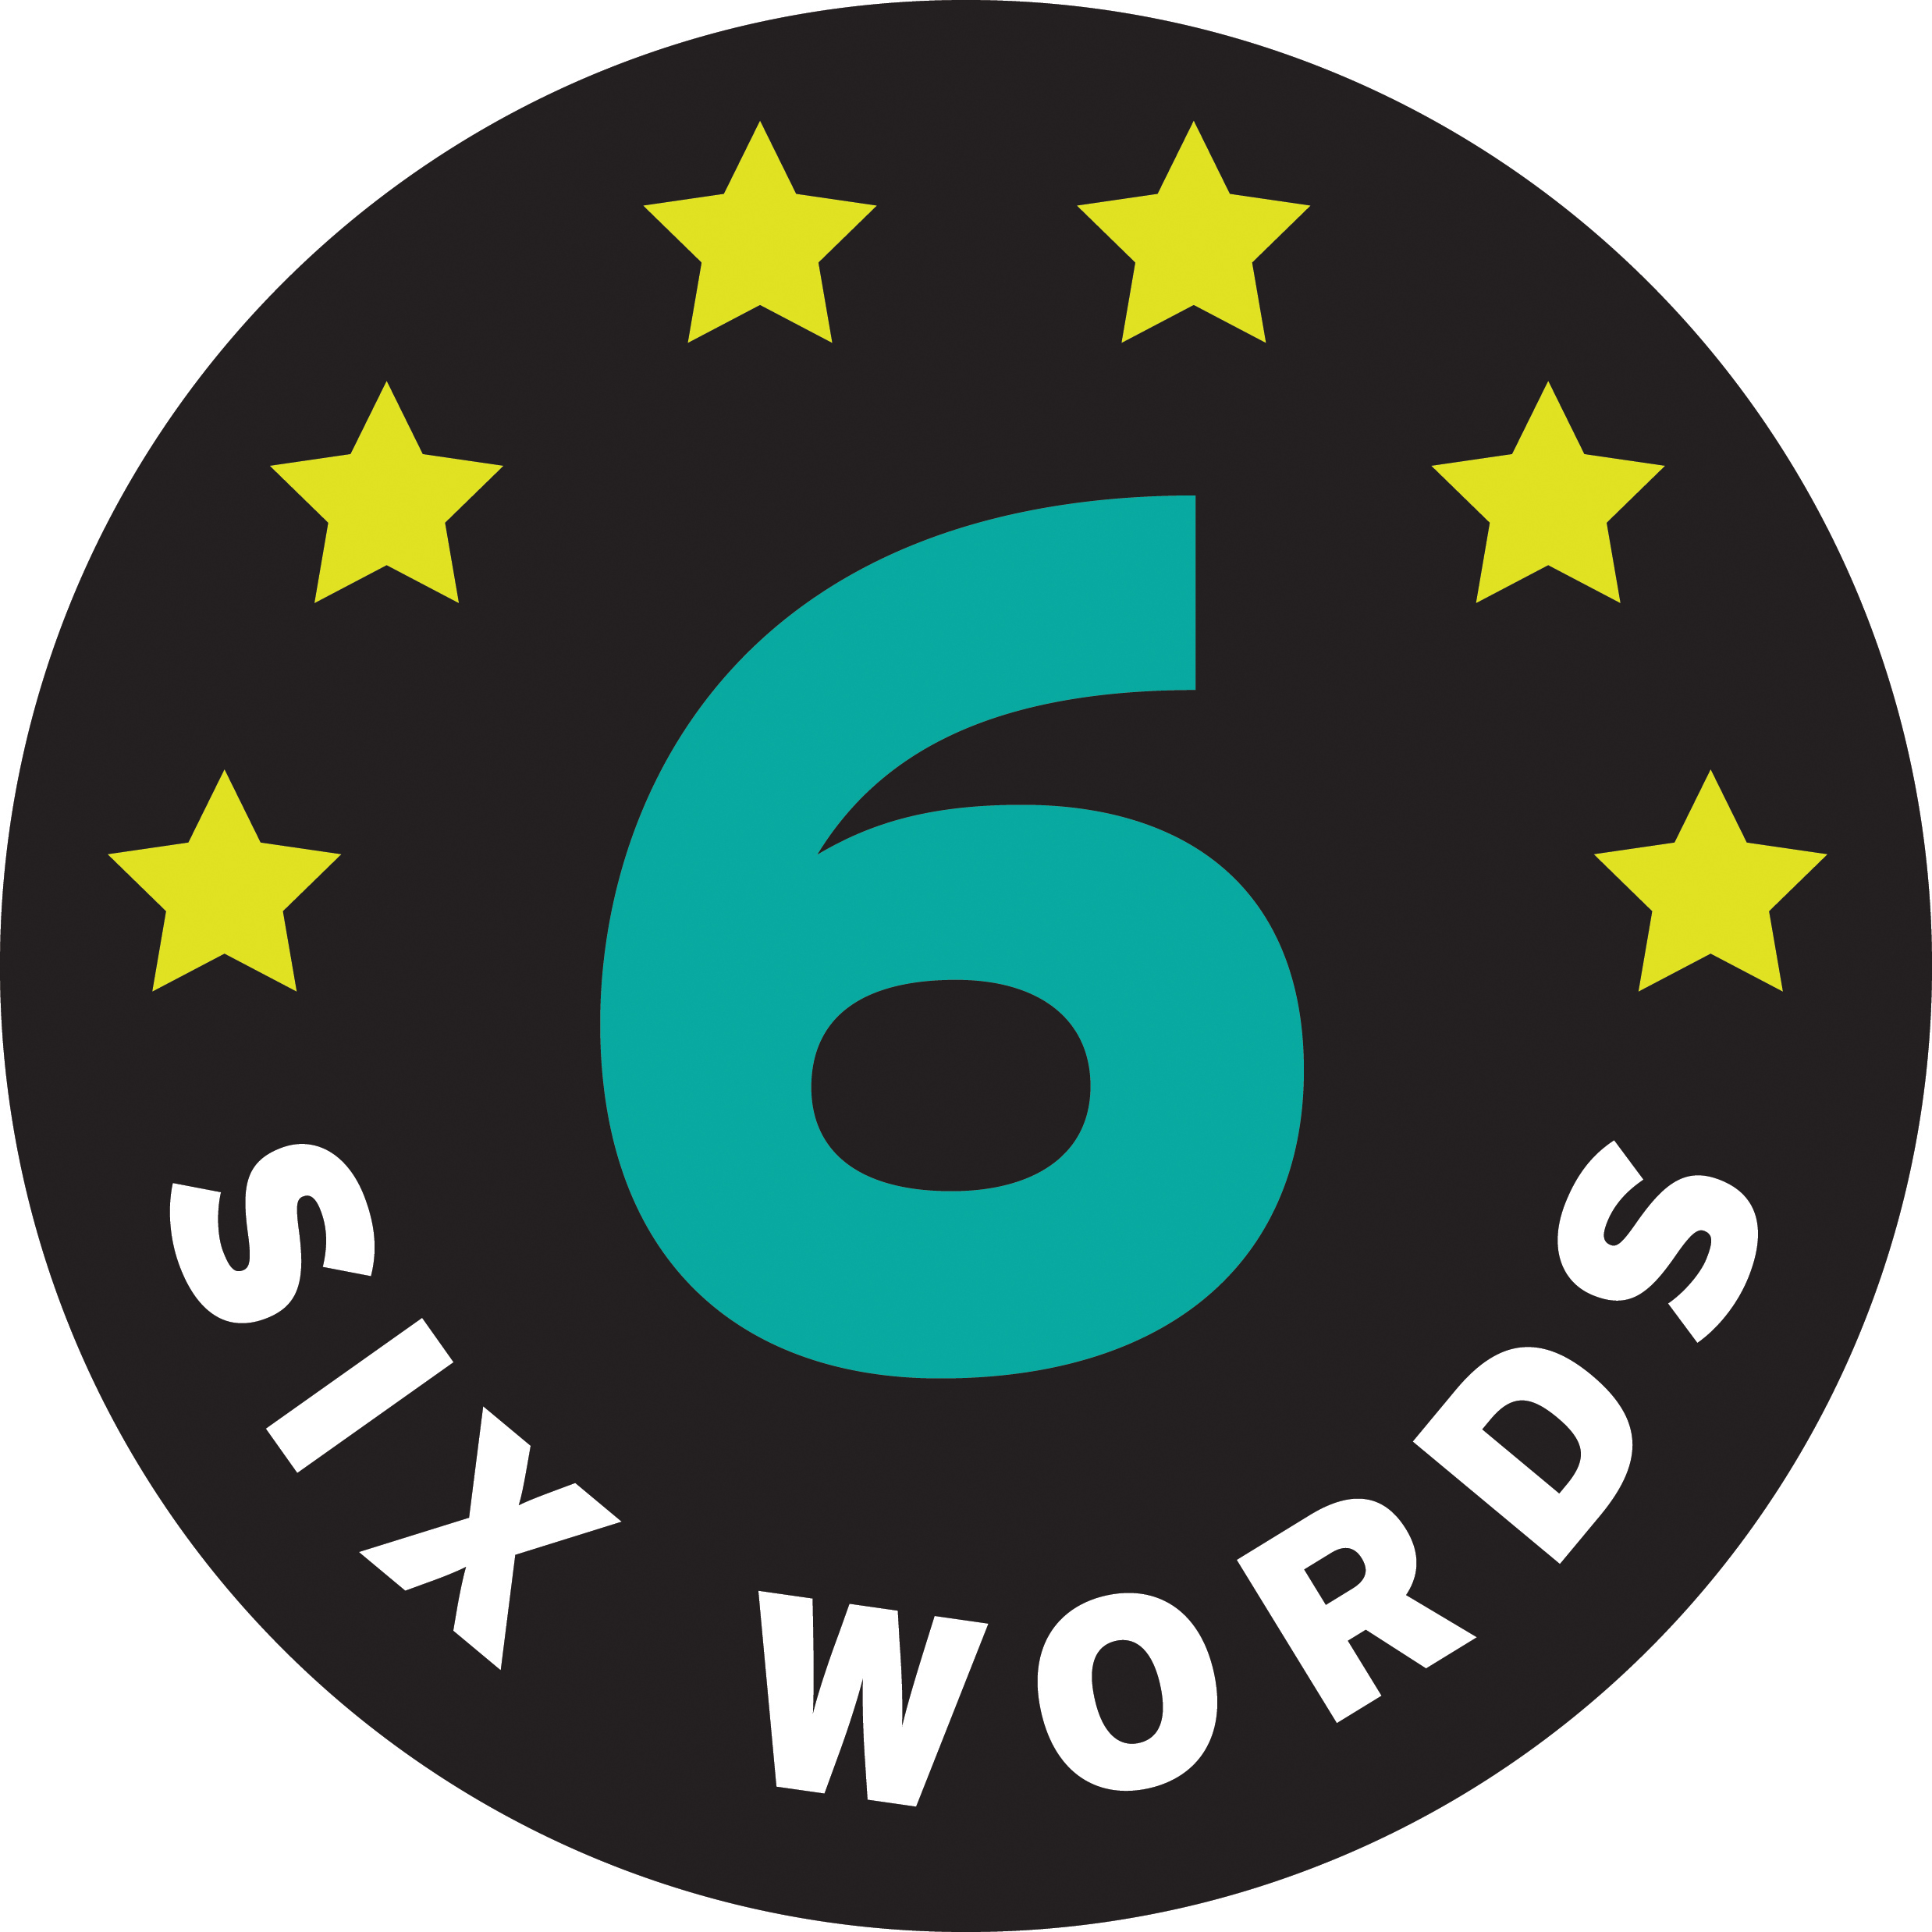 Enter The My Family S Journey Six Word Memoirs Contest